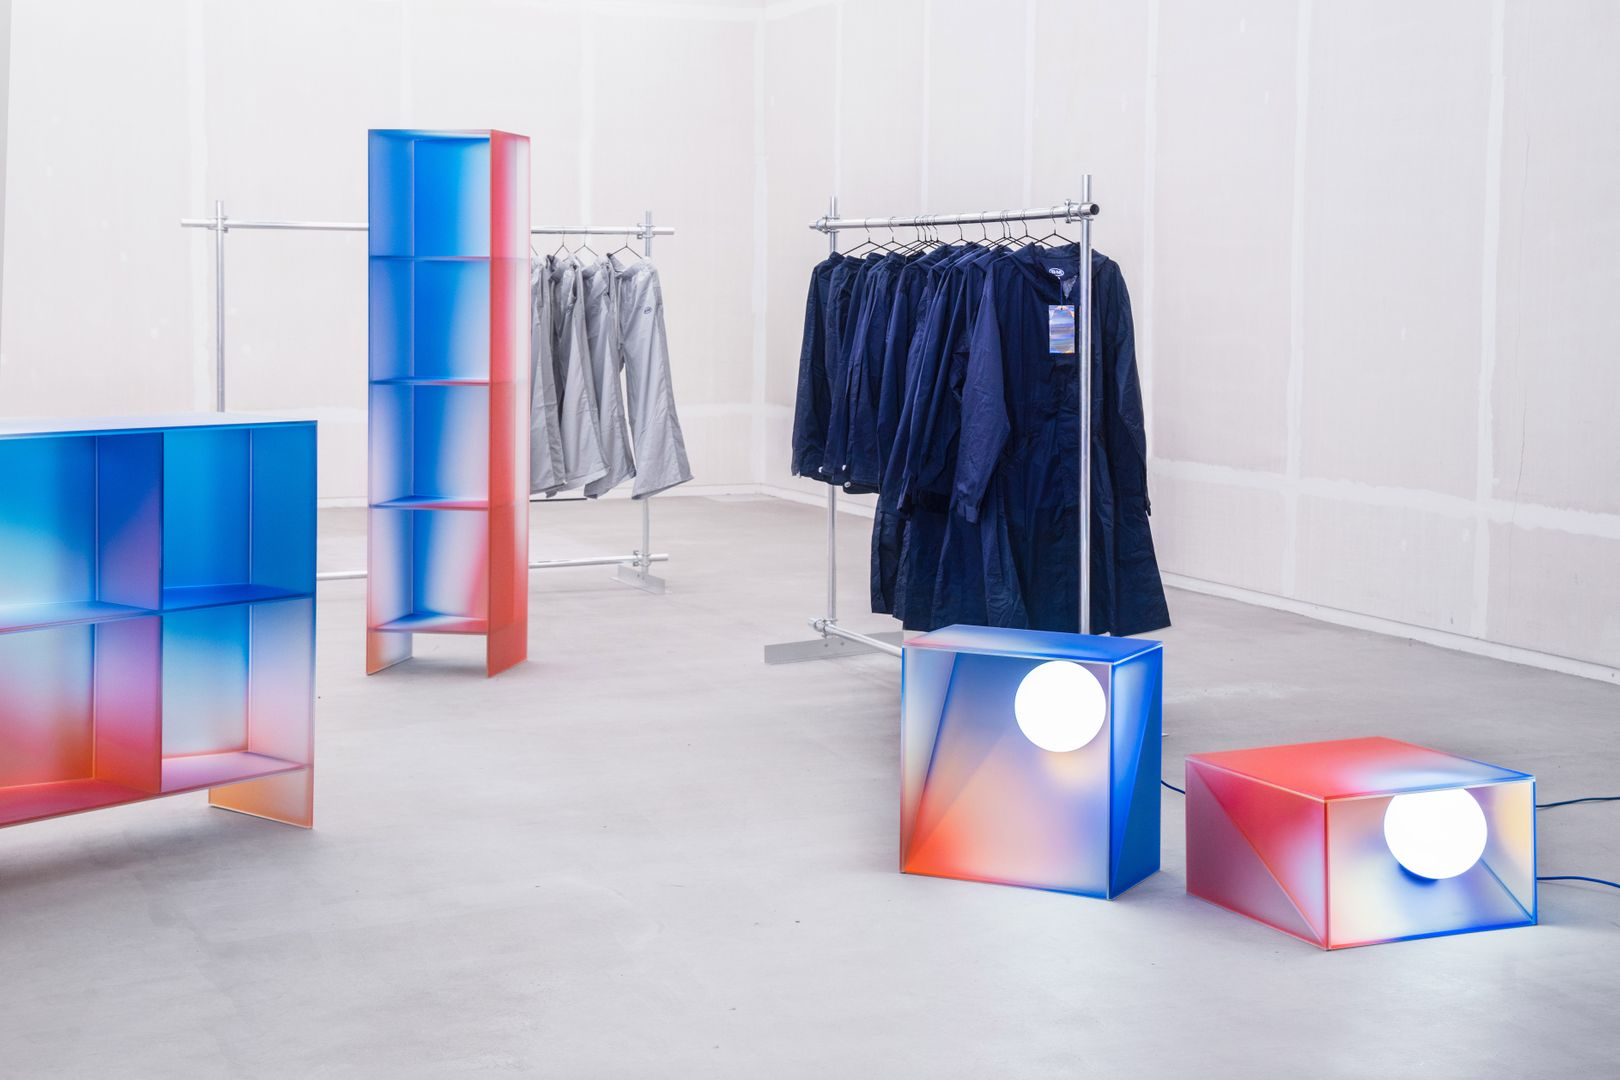 Studio Buzao, Halo Collection courtesy of Gallery ALL